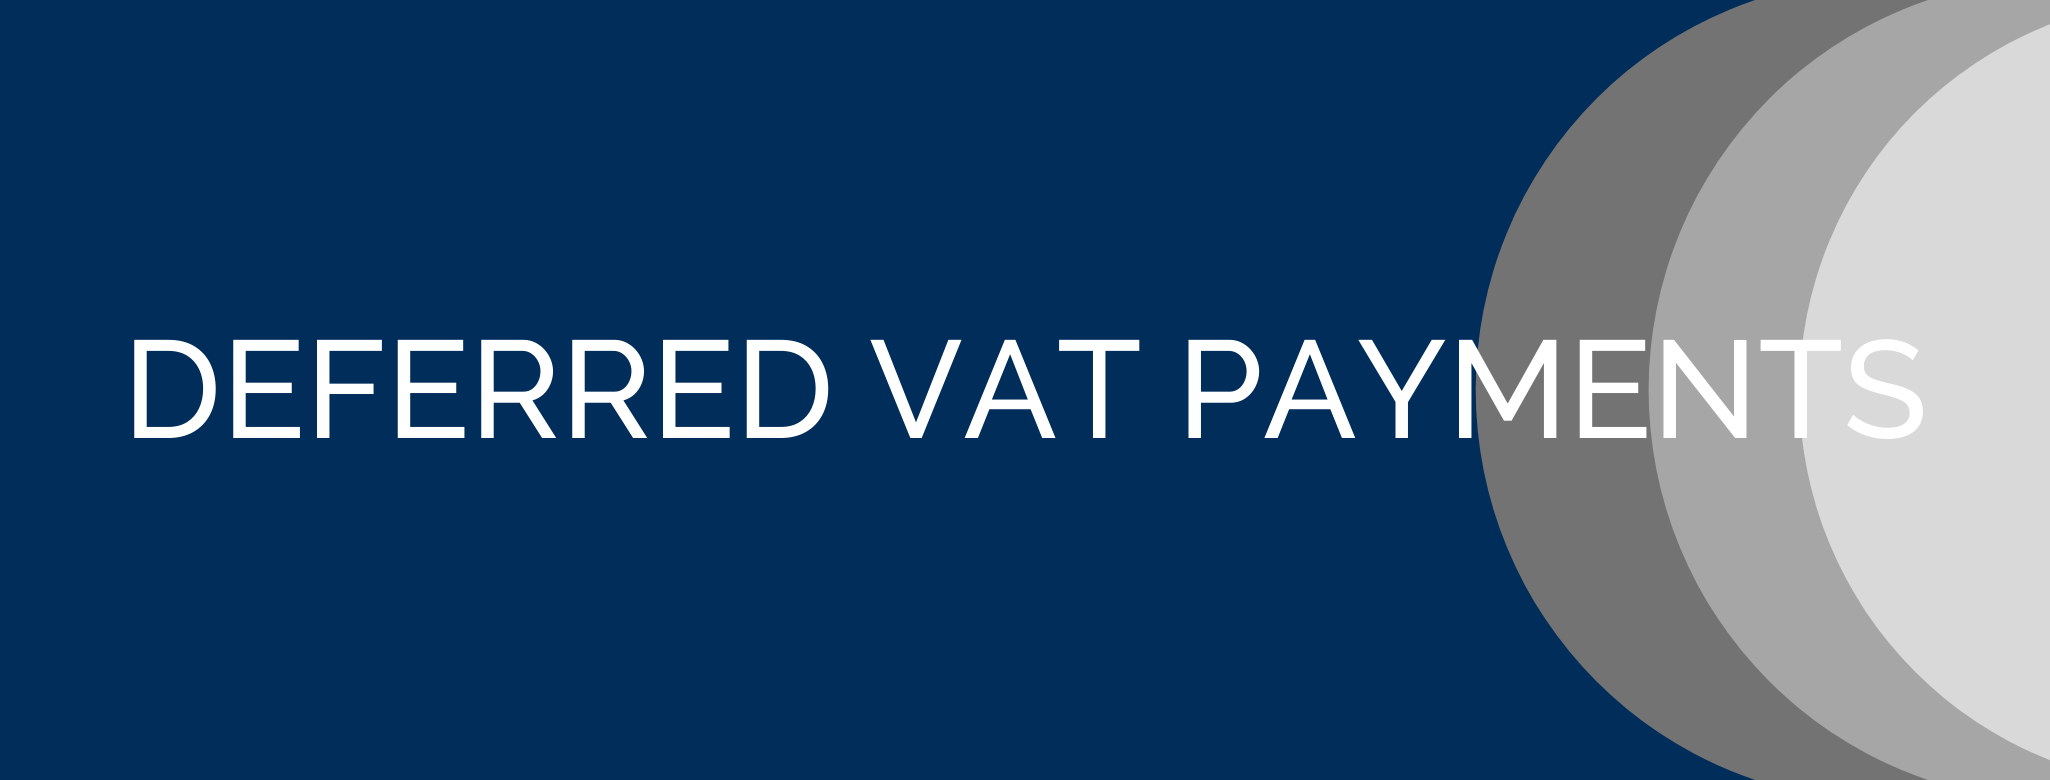 Deferred VAT Payments Due Date Accountants in Manchester